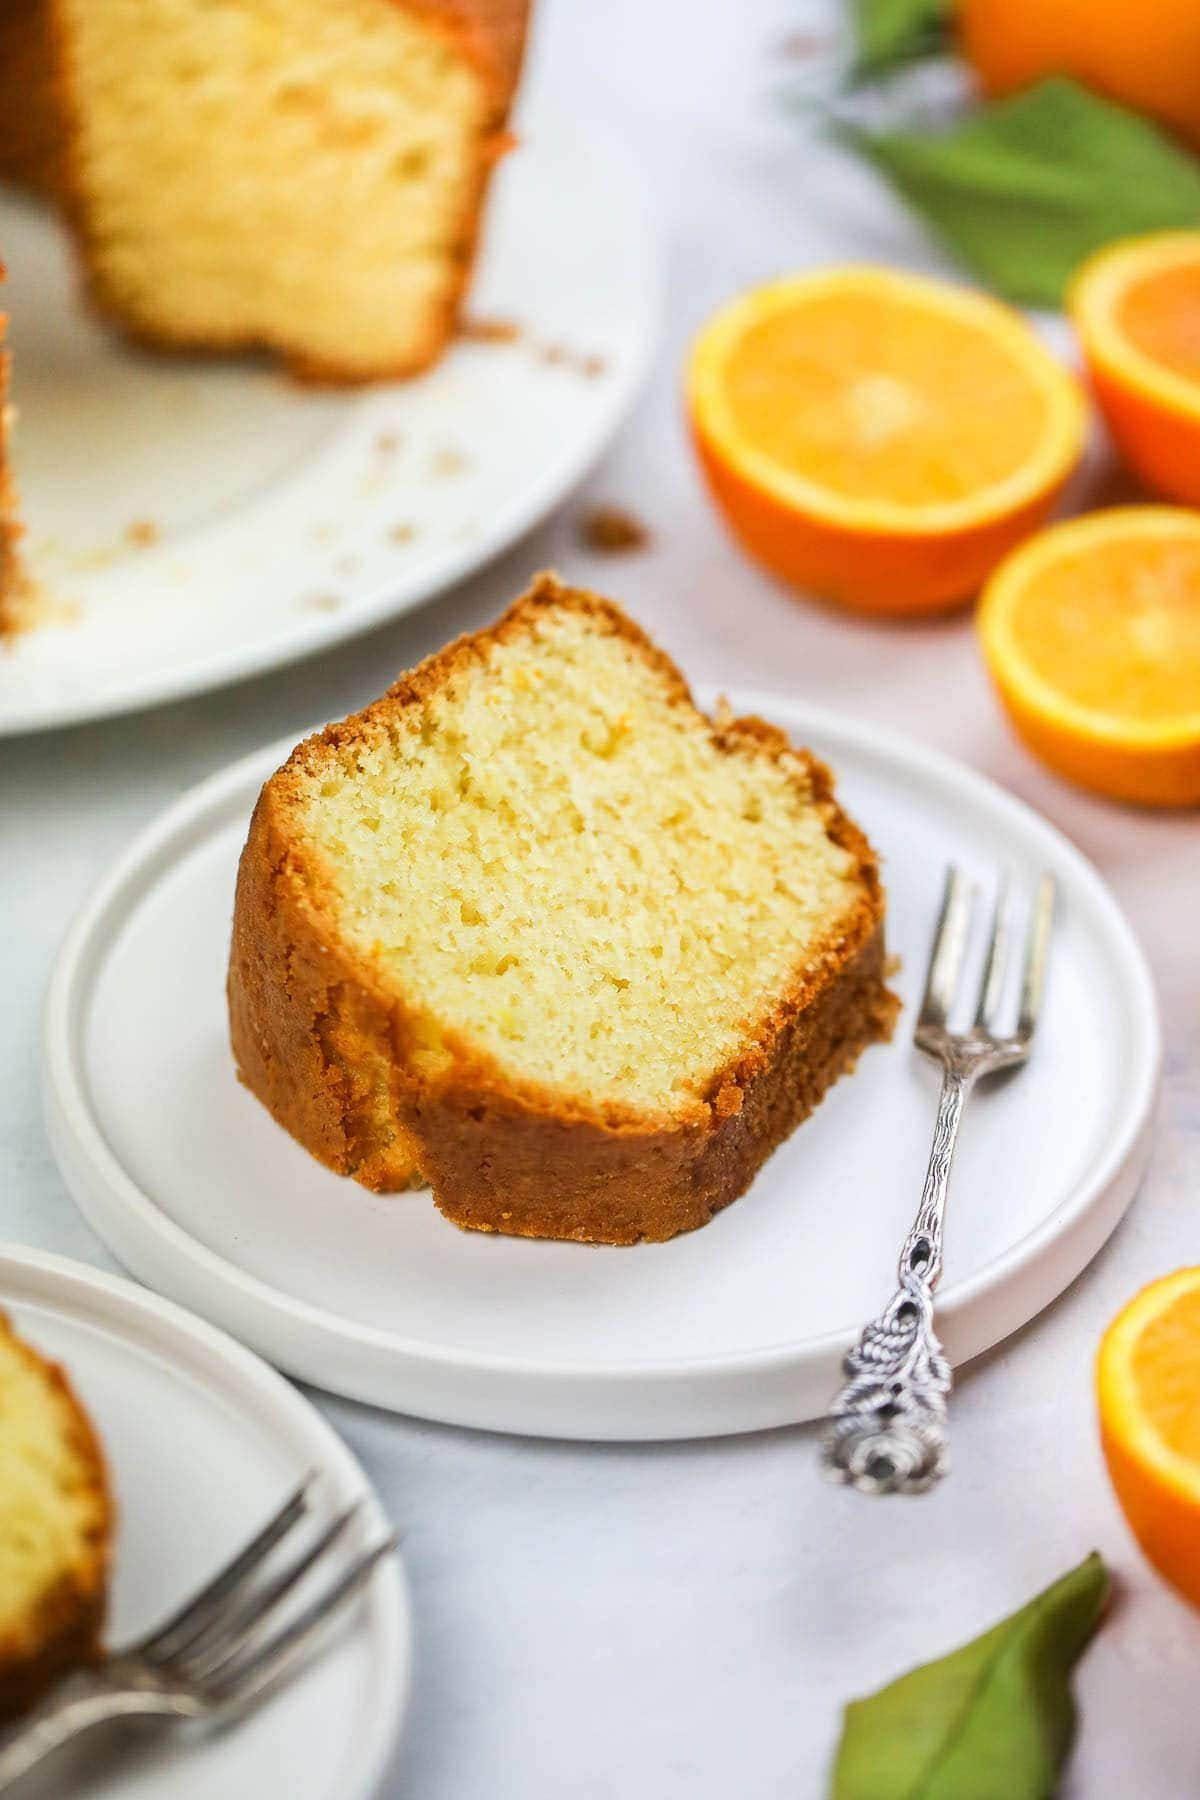 A slice of Orange Juice Cake on a white plate with a vintage cake fork